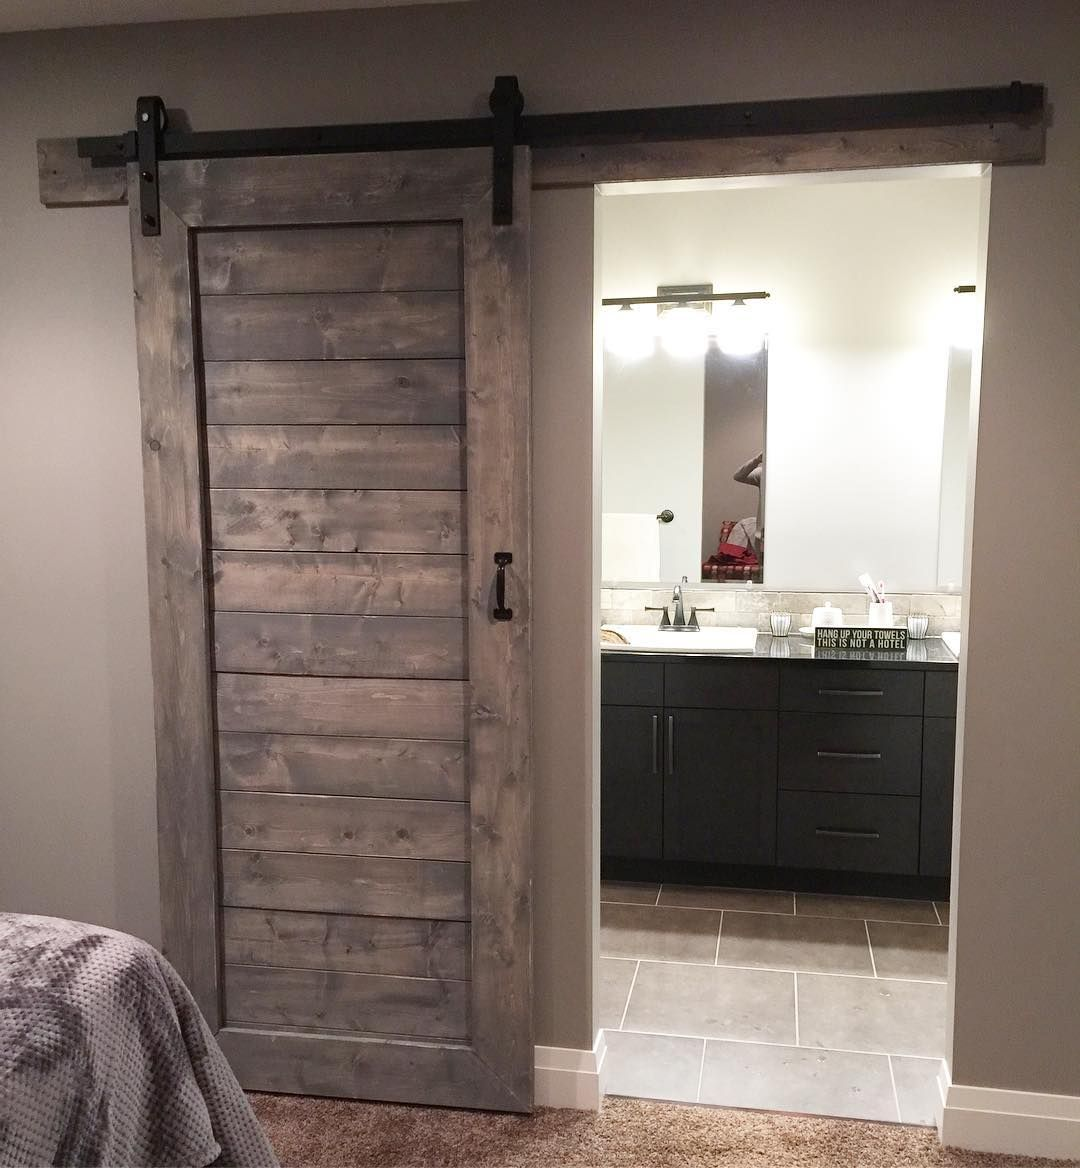 rustic barn door sliding barn door diy barn door. Black Bedroom Furniture Sets. Home Design Ideas